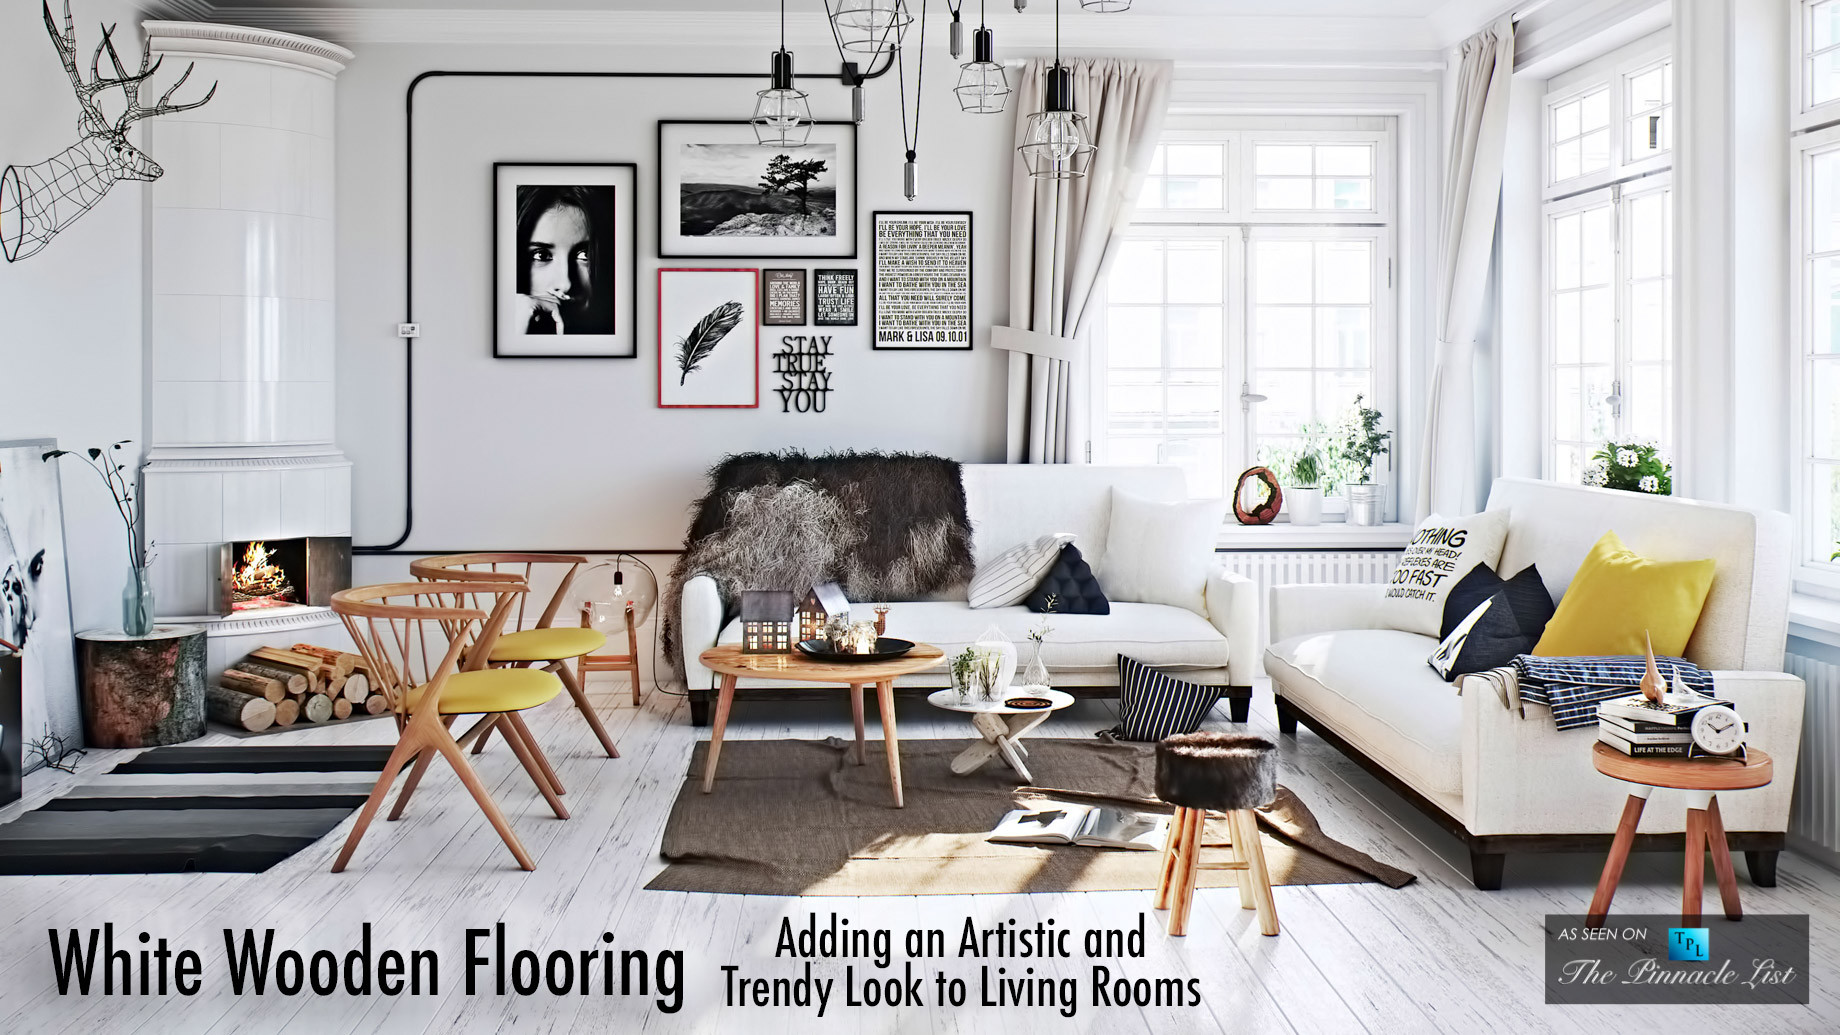 white hardwood floors for sale of white wooden flooring adding an artistic and trendy look to living regarding white wooden flooring adding an artistic and trendy look to living rooms the pinnacle list